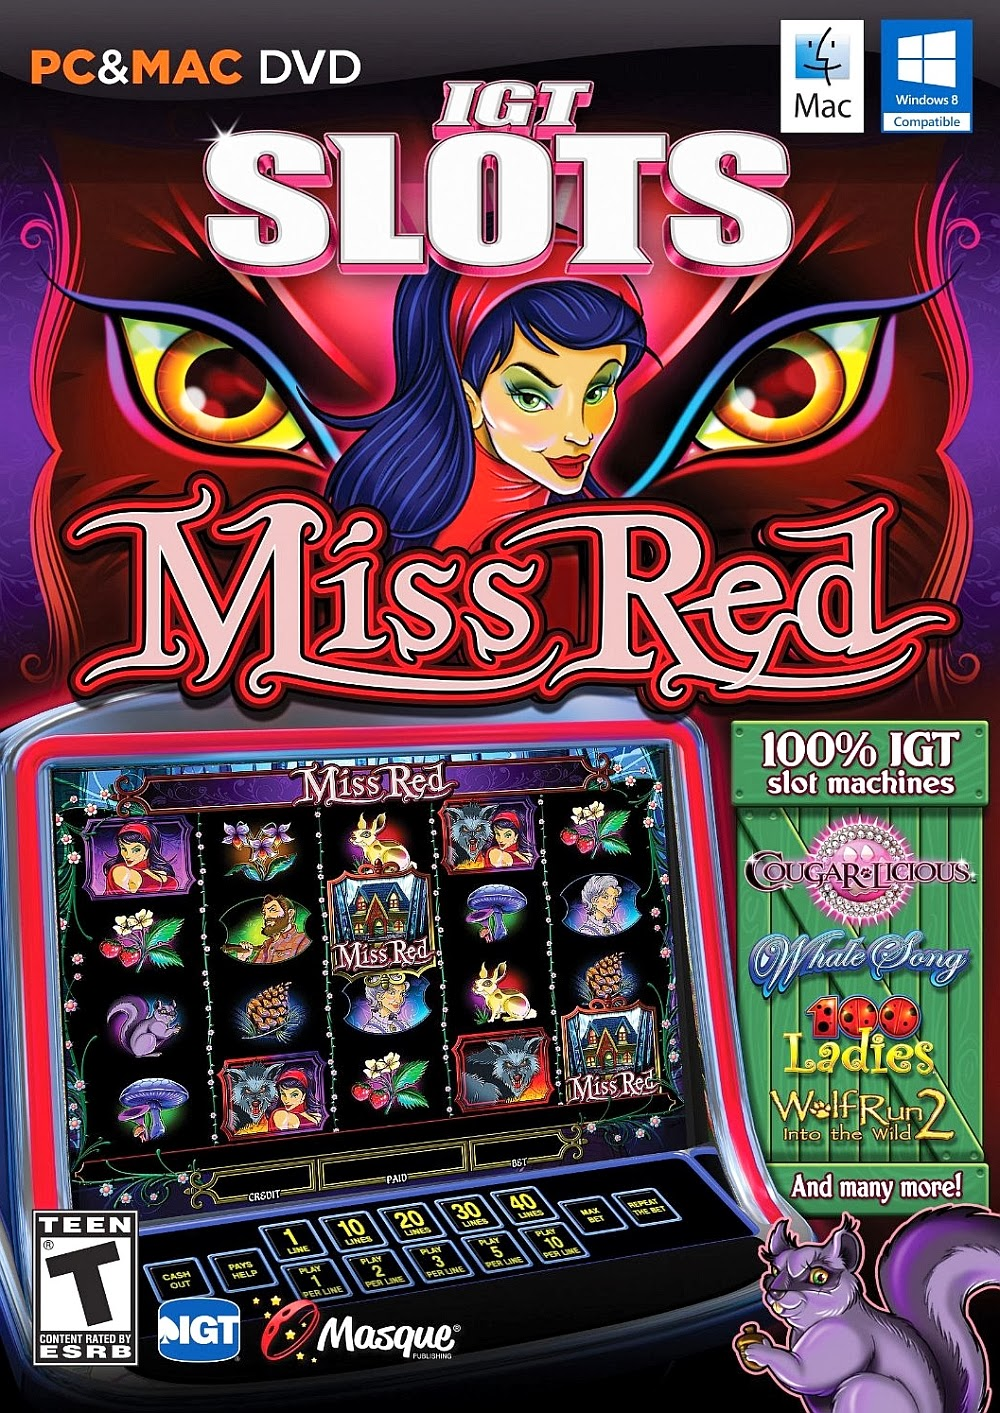 Game Slot Machine Pc